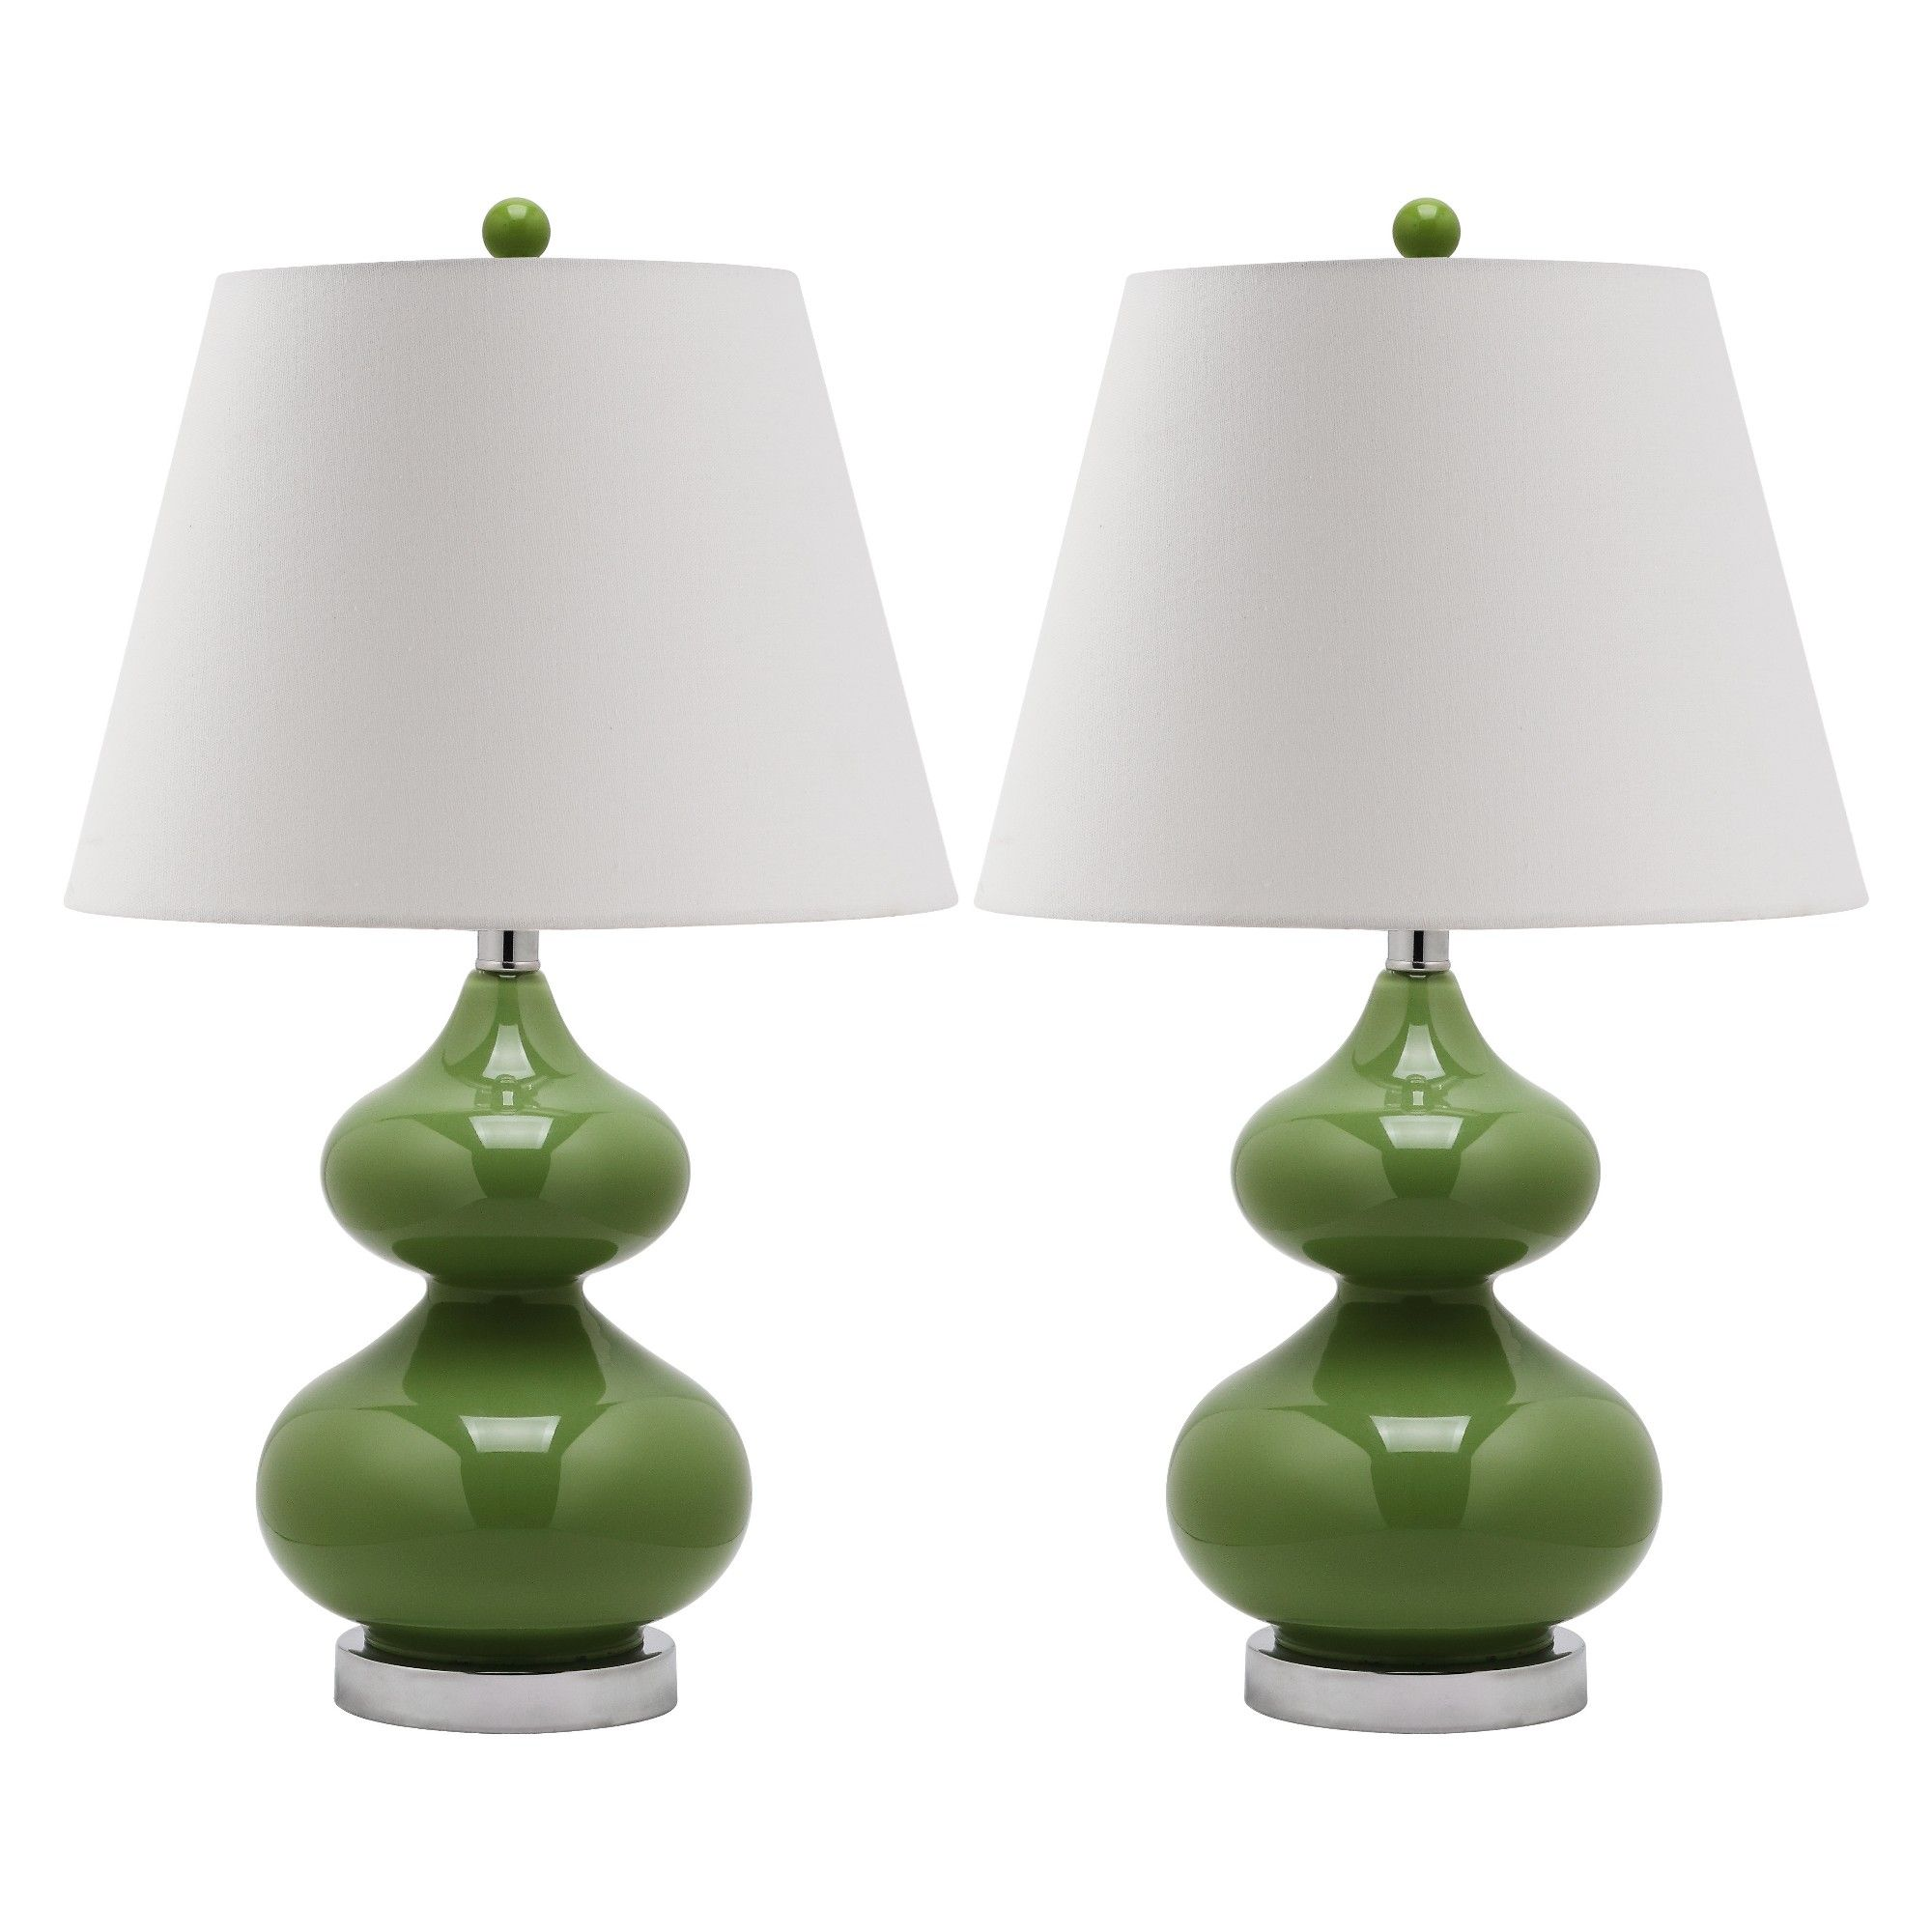 Table Lamp Green/White (Includes Energy Efficient Light